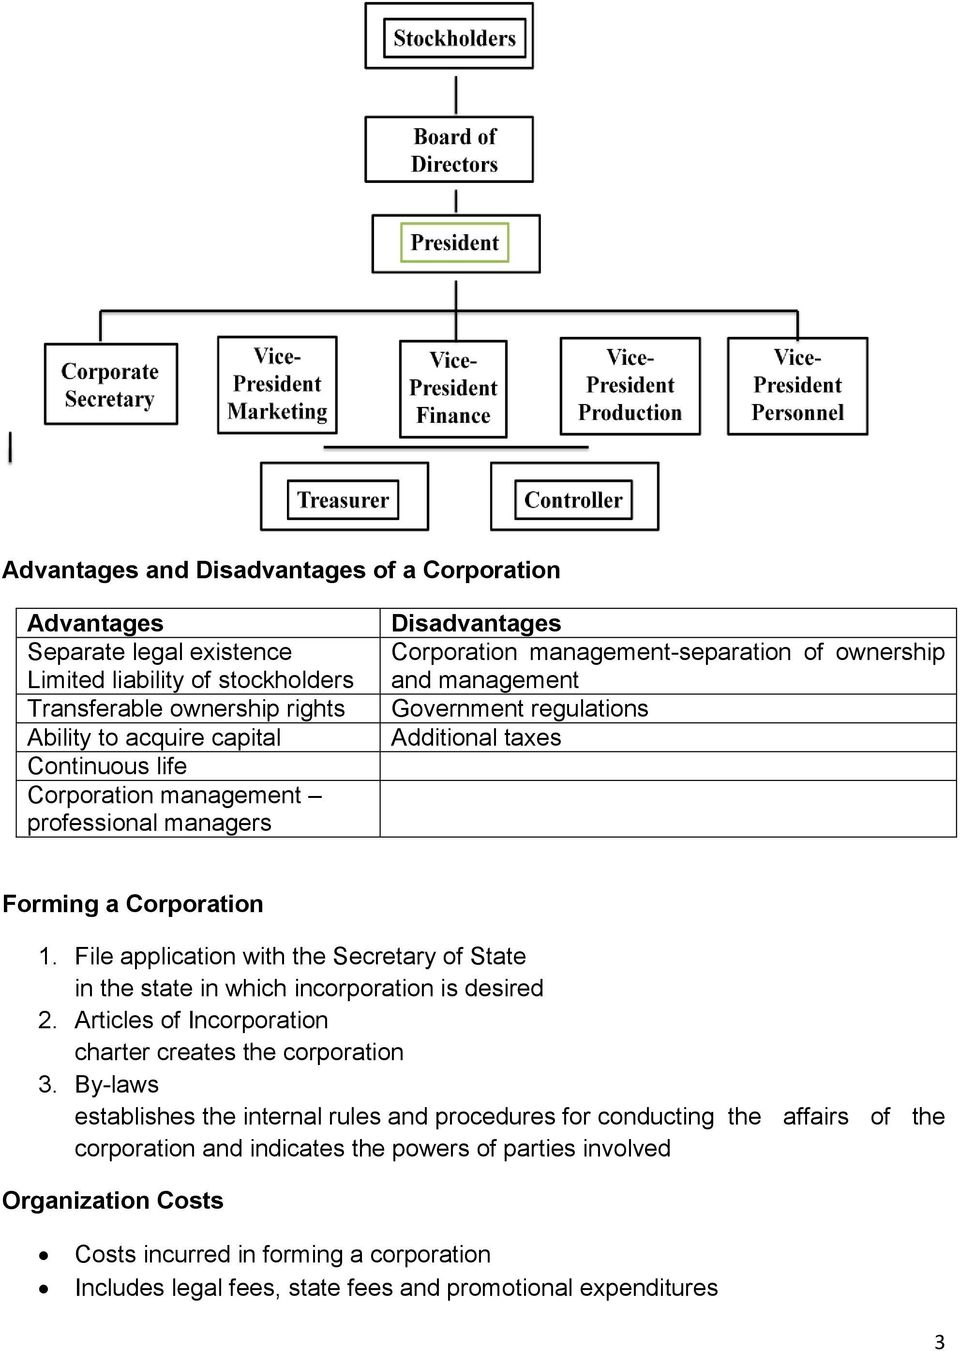 File application with the Secretary of State in the state in which incorporation is desired 2. Articles of Incorporation charter creates the corporation 3.